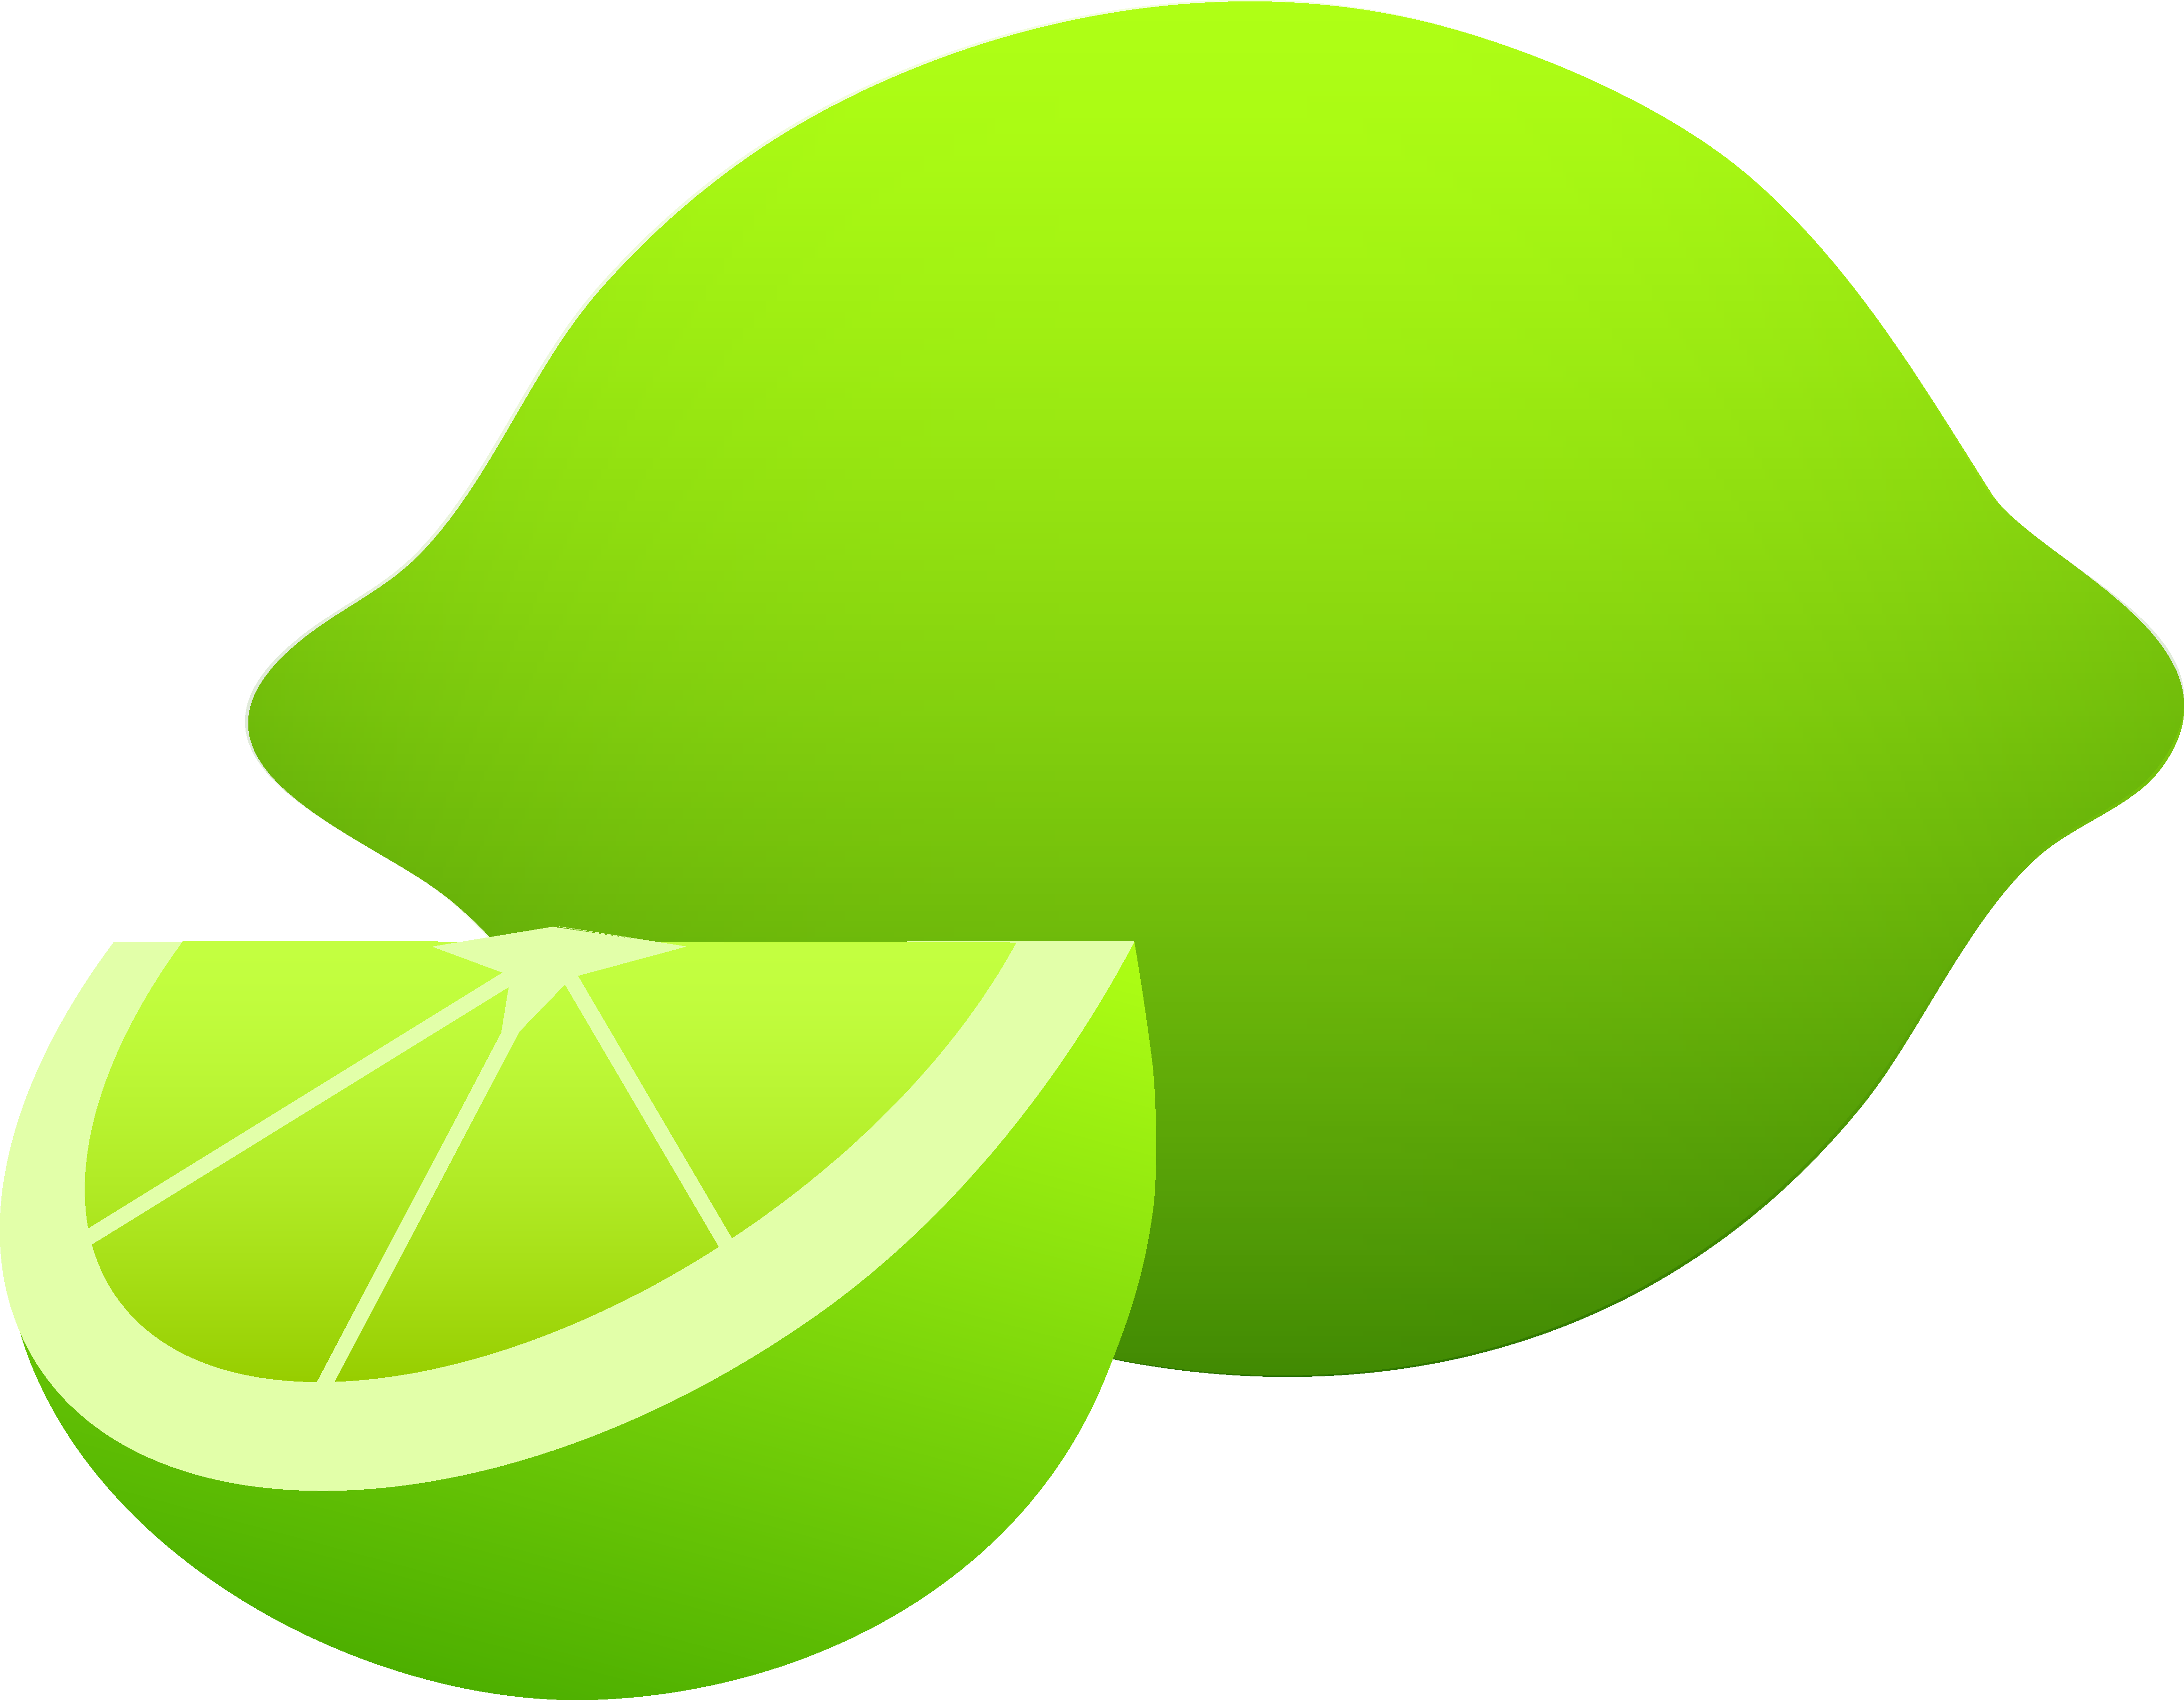 graphic freeuse library Free . Lime clipart.